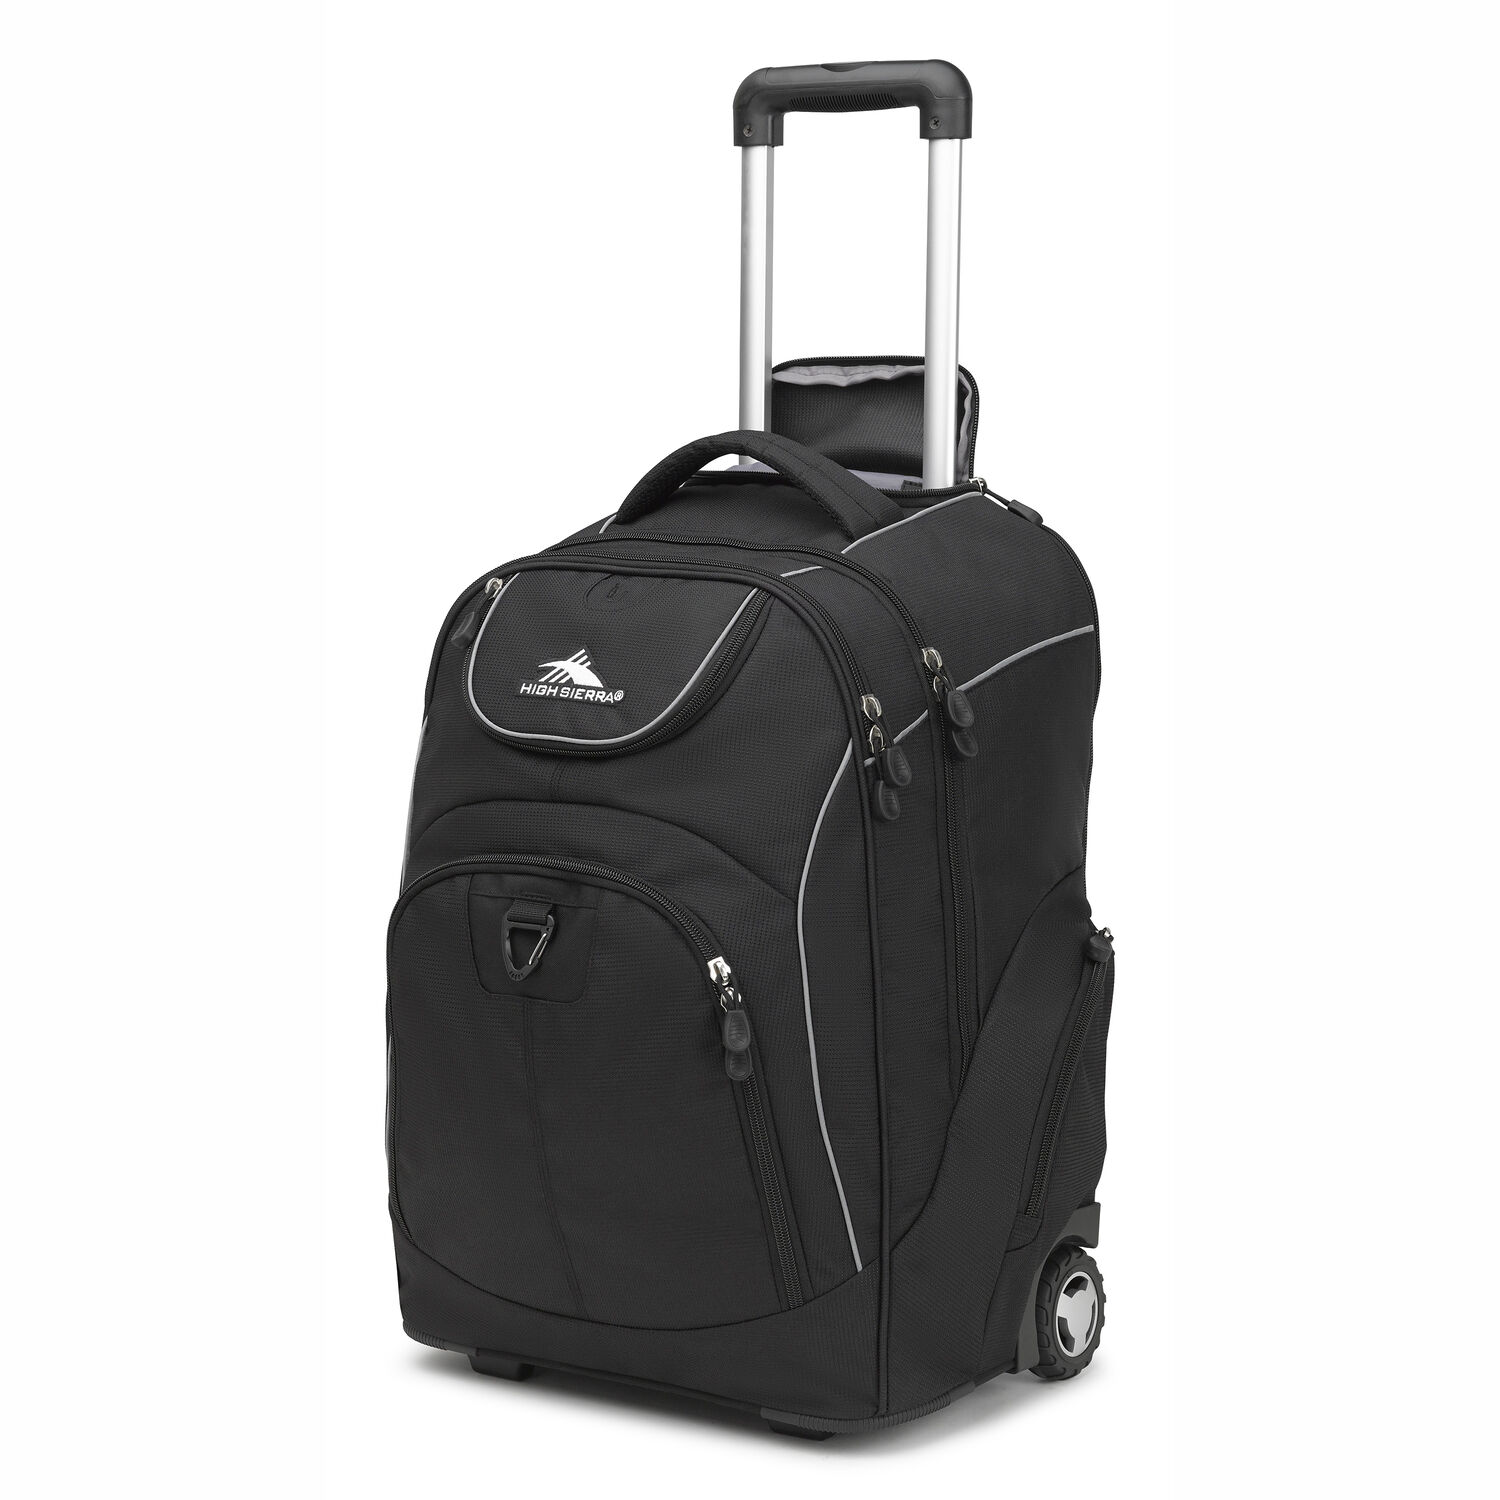 66f3466417 High Sierra Powerglide Wheeled Backpack in the color Black.